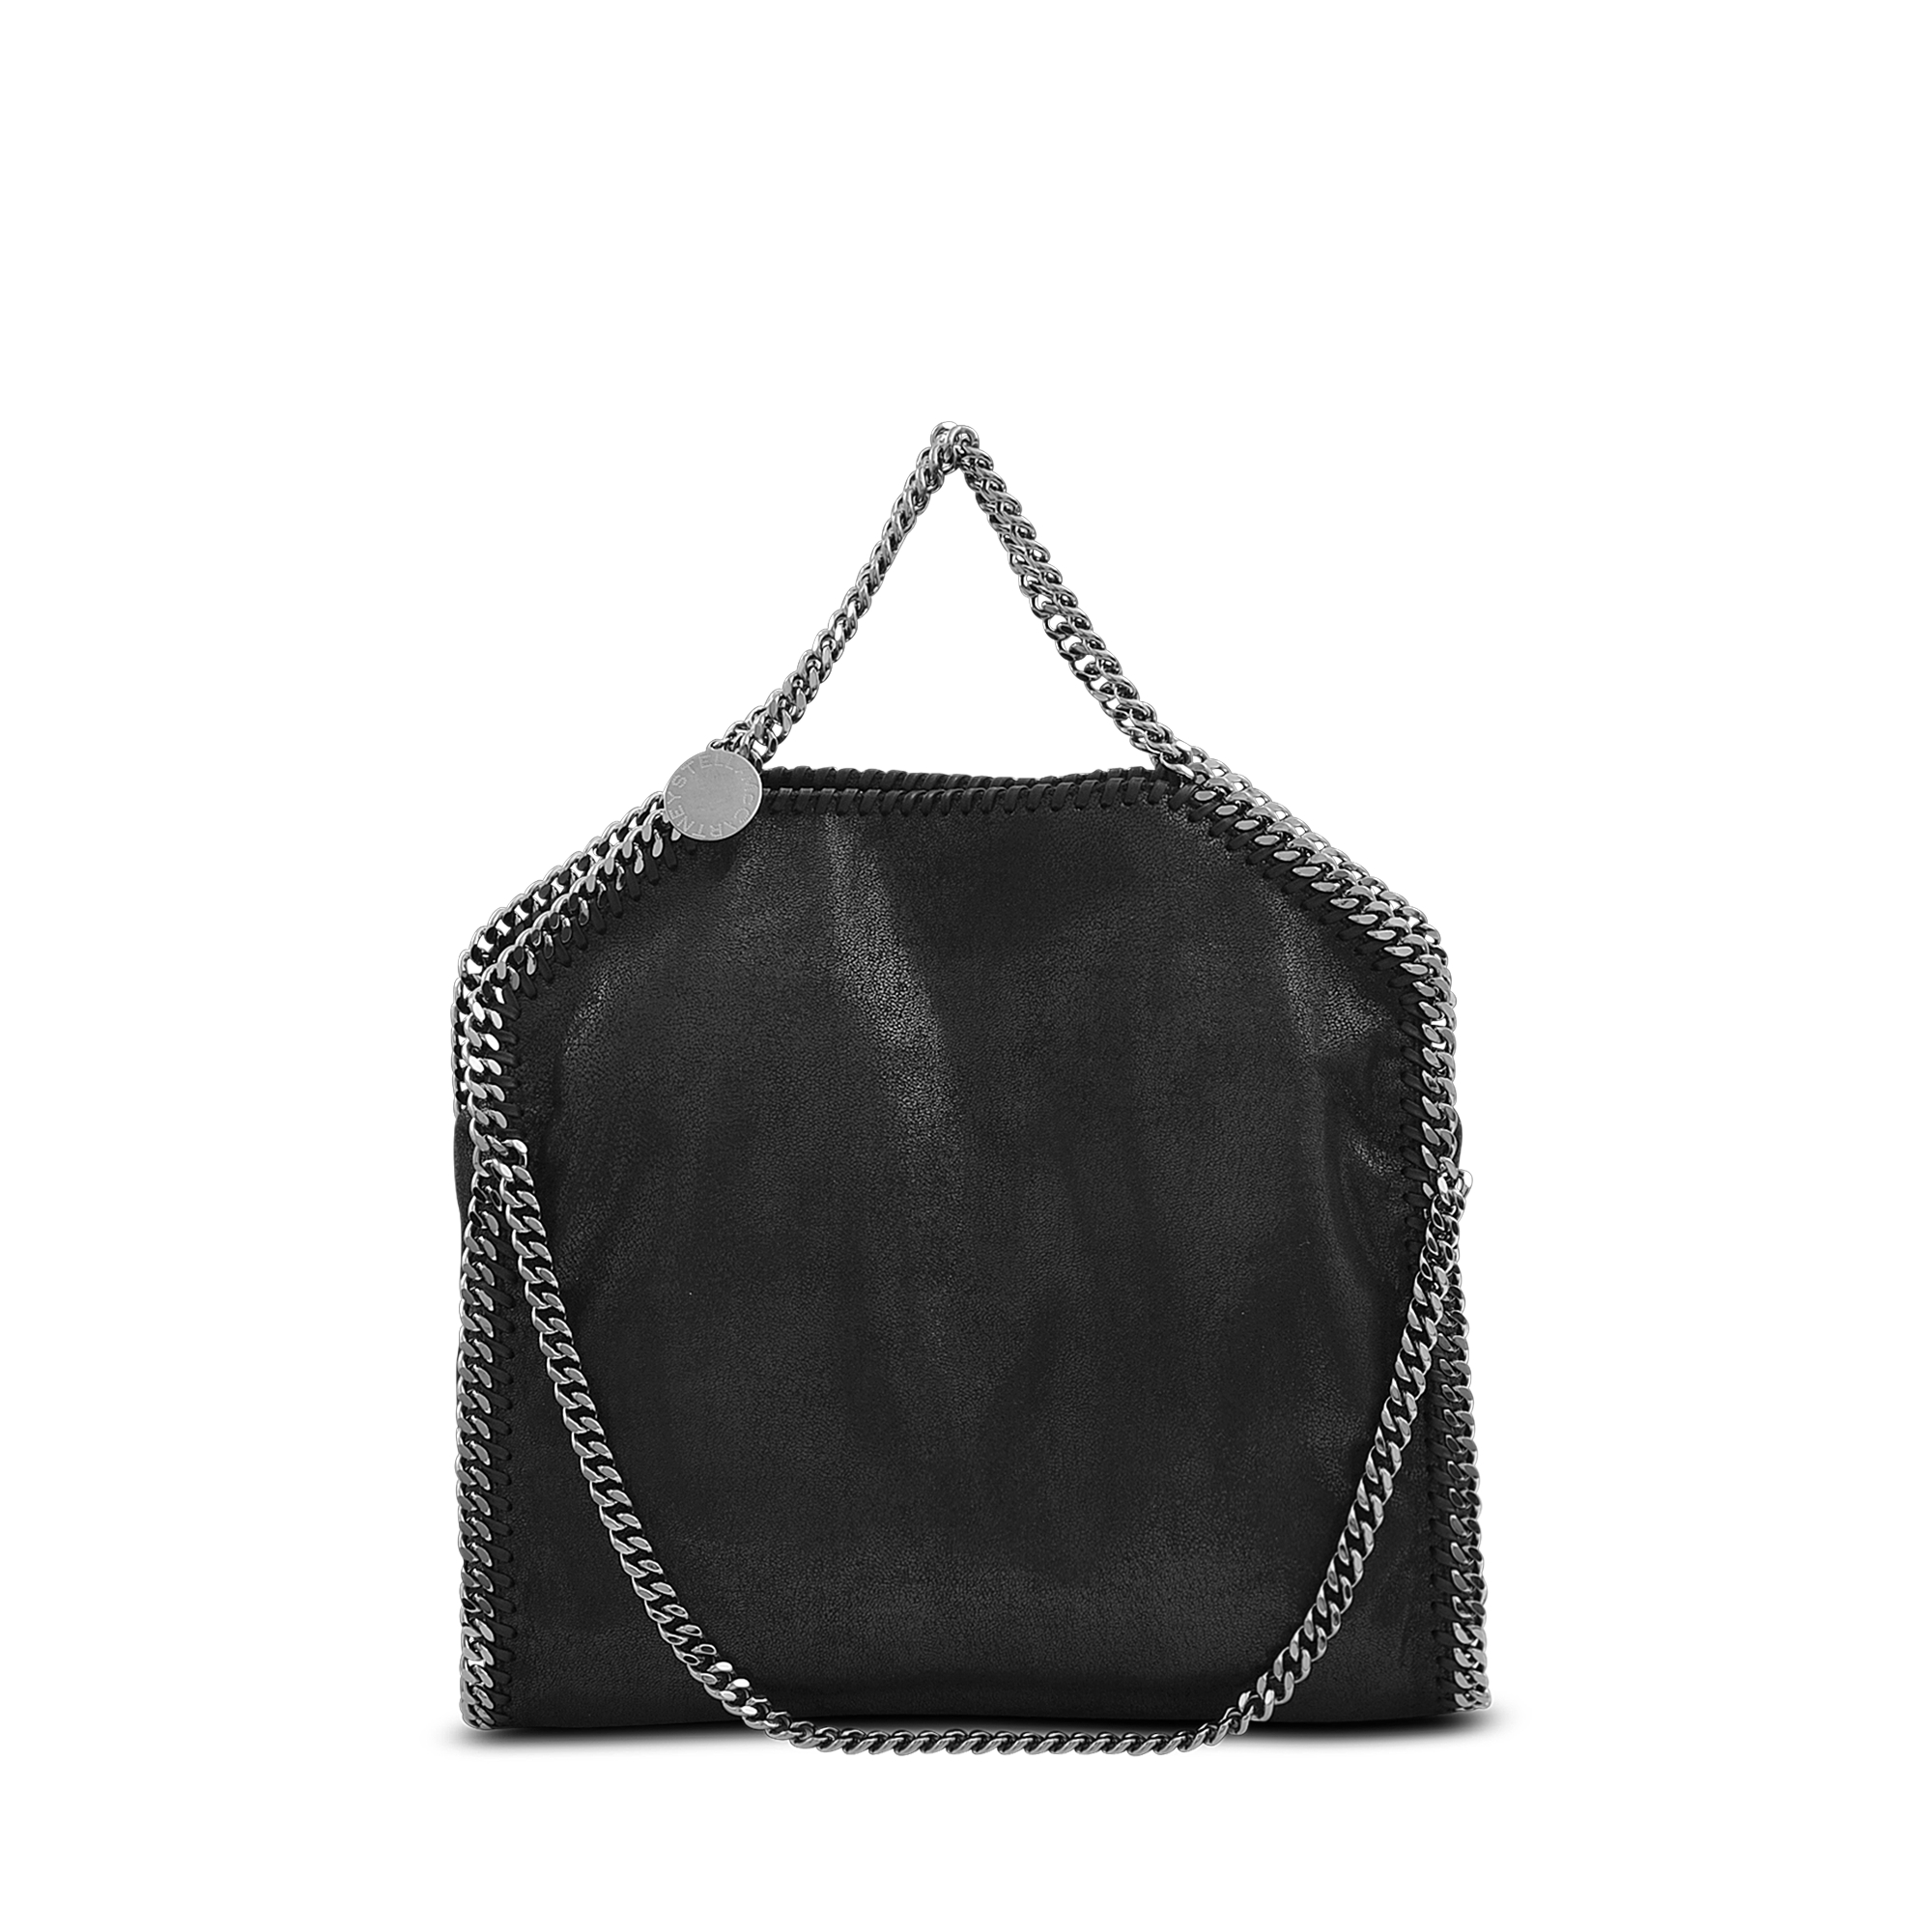 Stella mccartney Falabella Shaggy Deer Shoulder Bag in ...